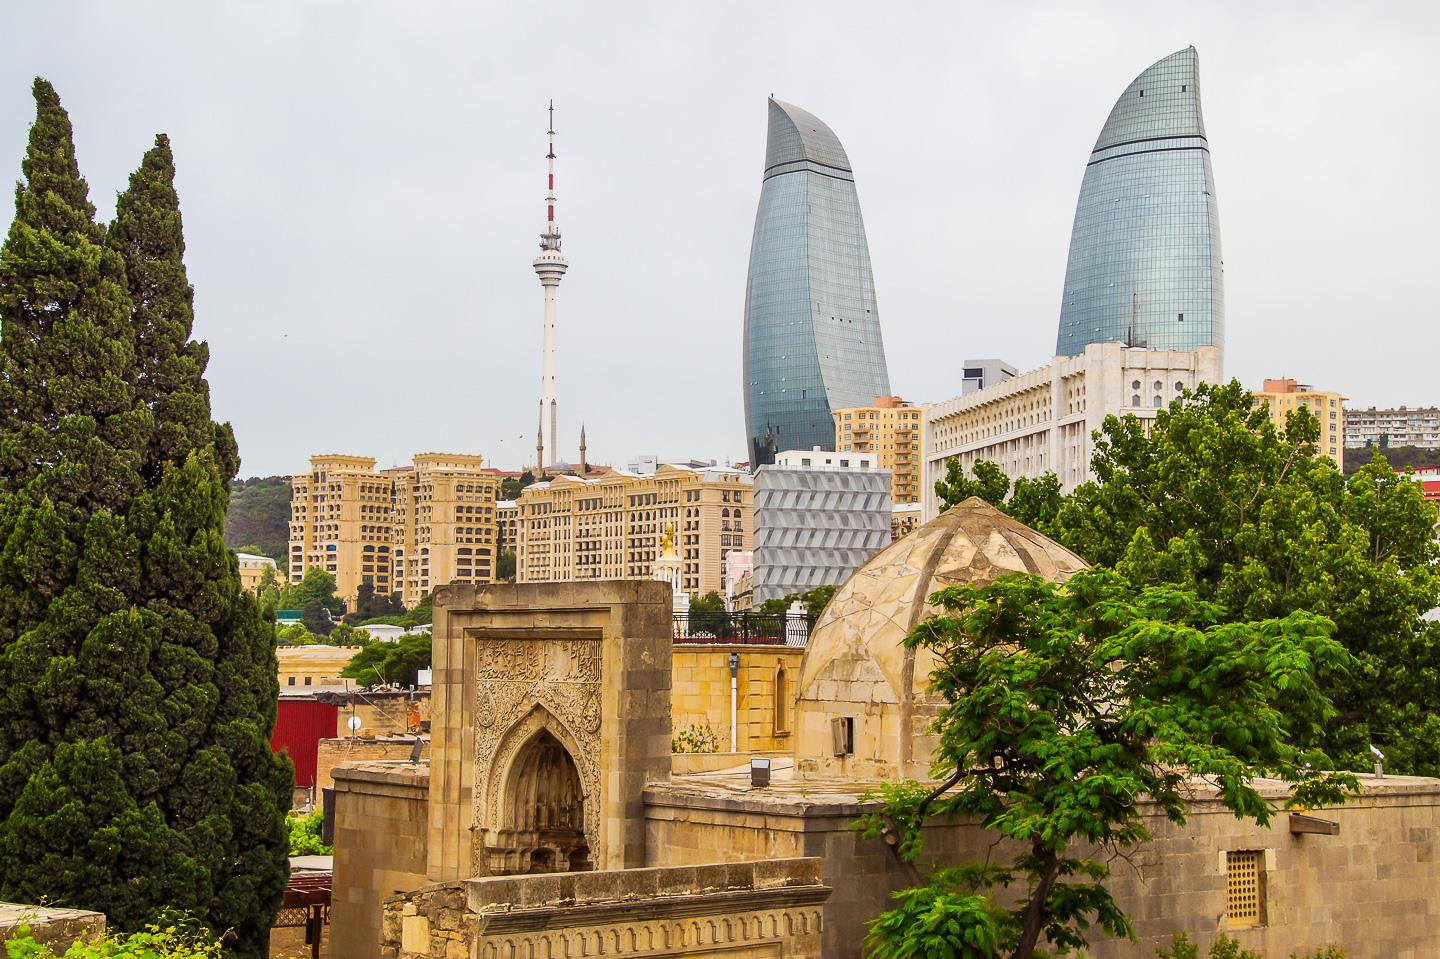 Old town of Baku, the Flame Towers